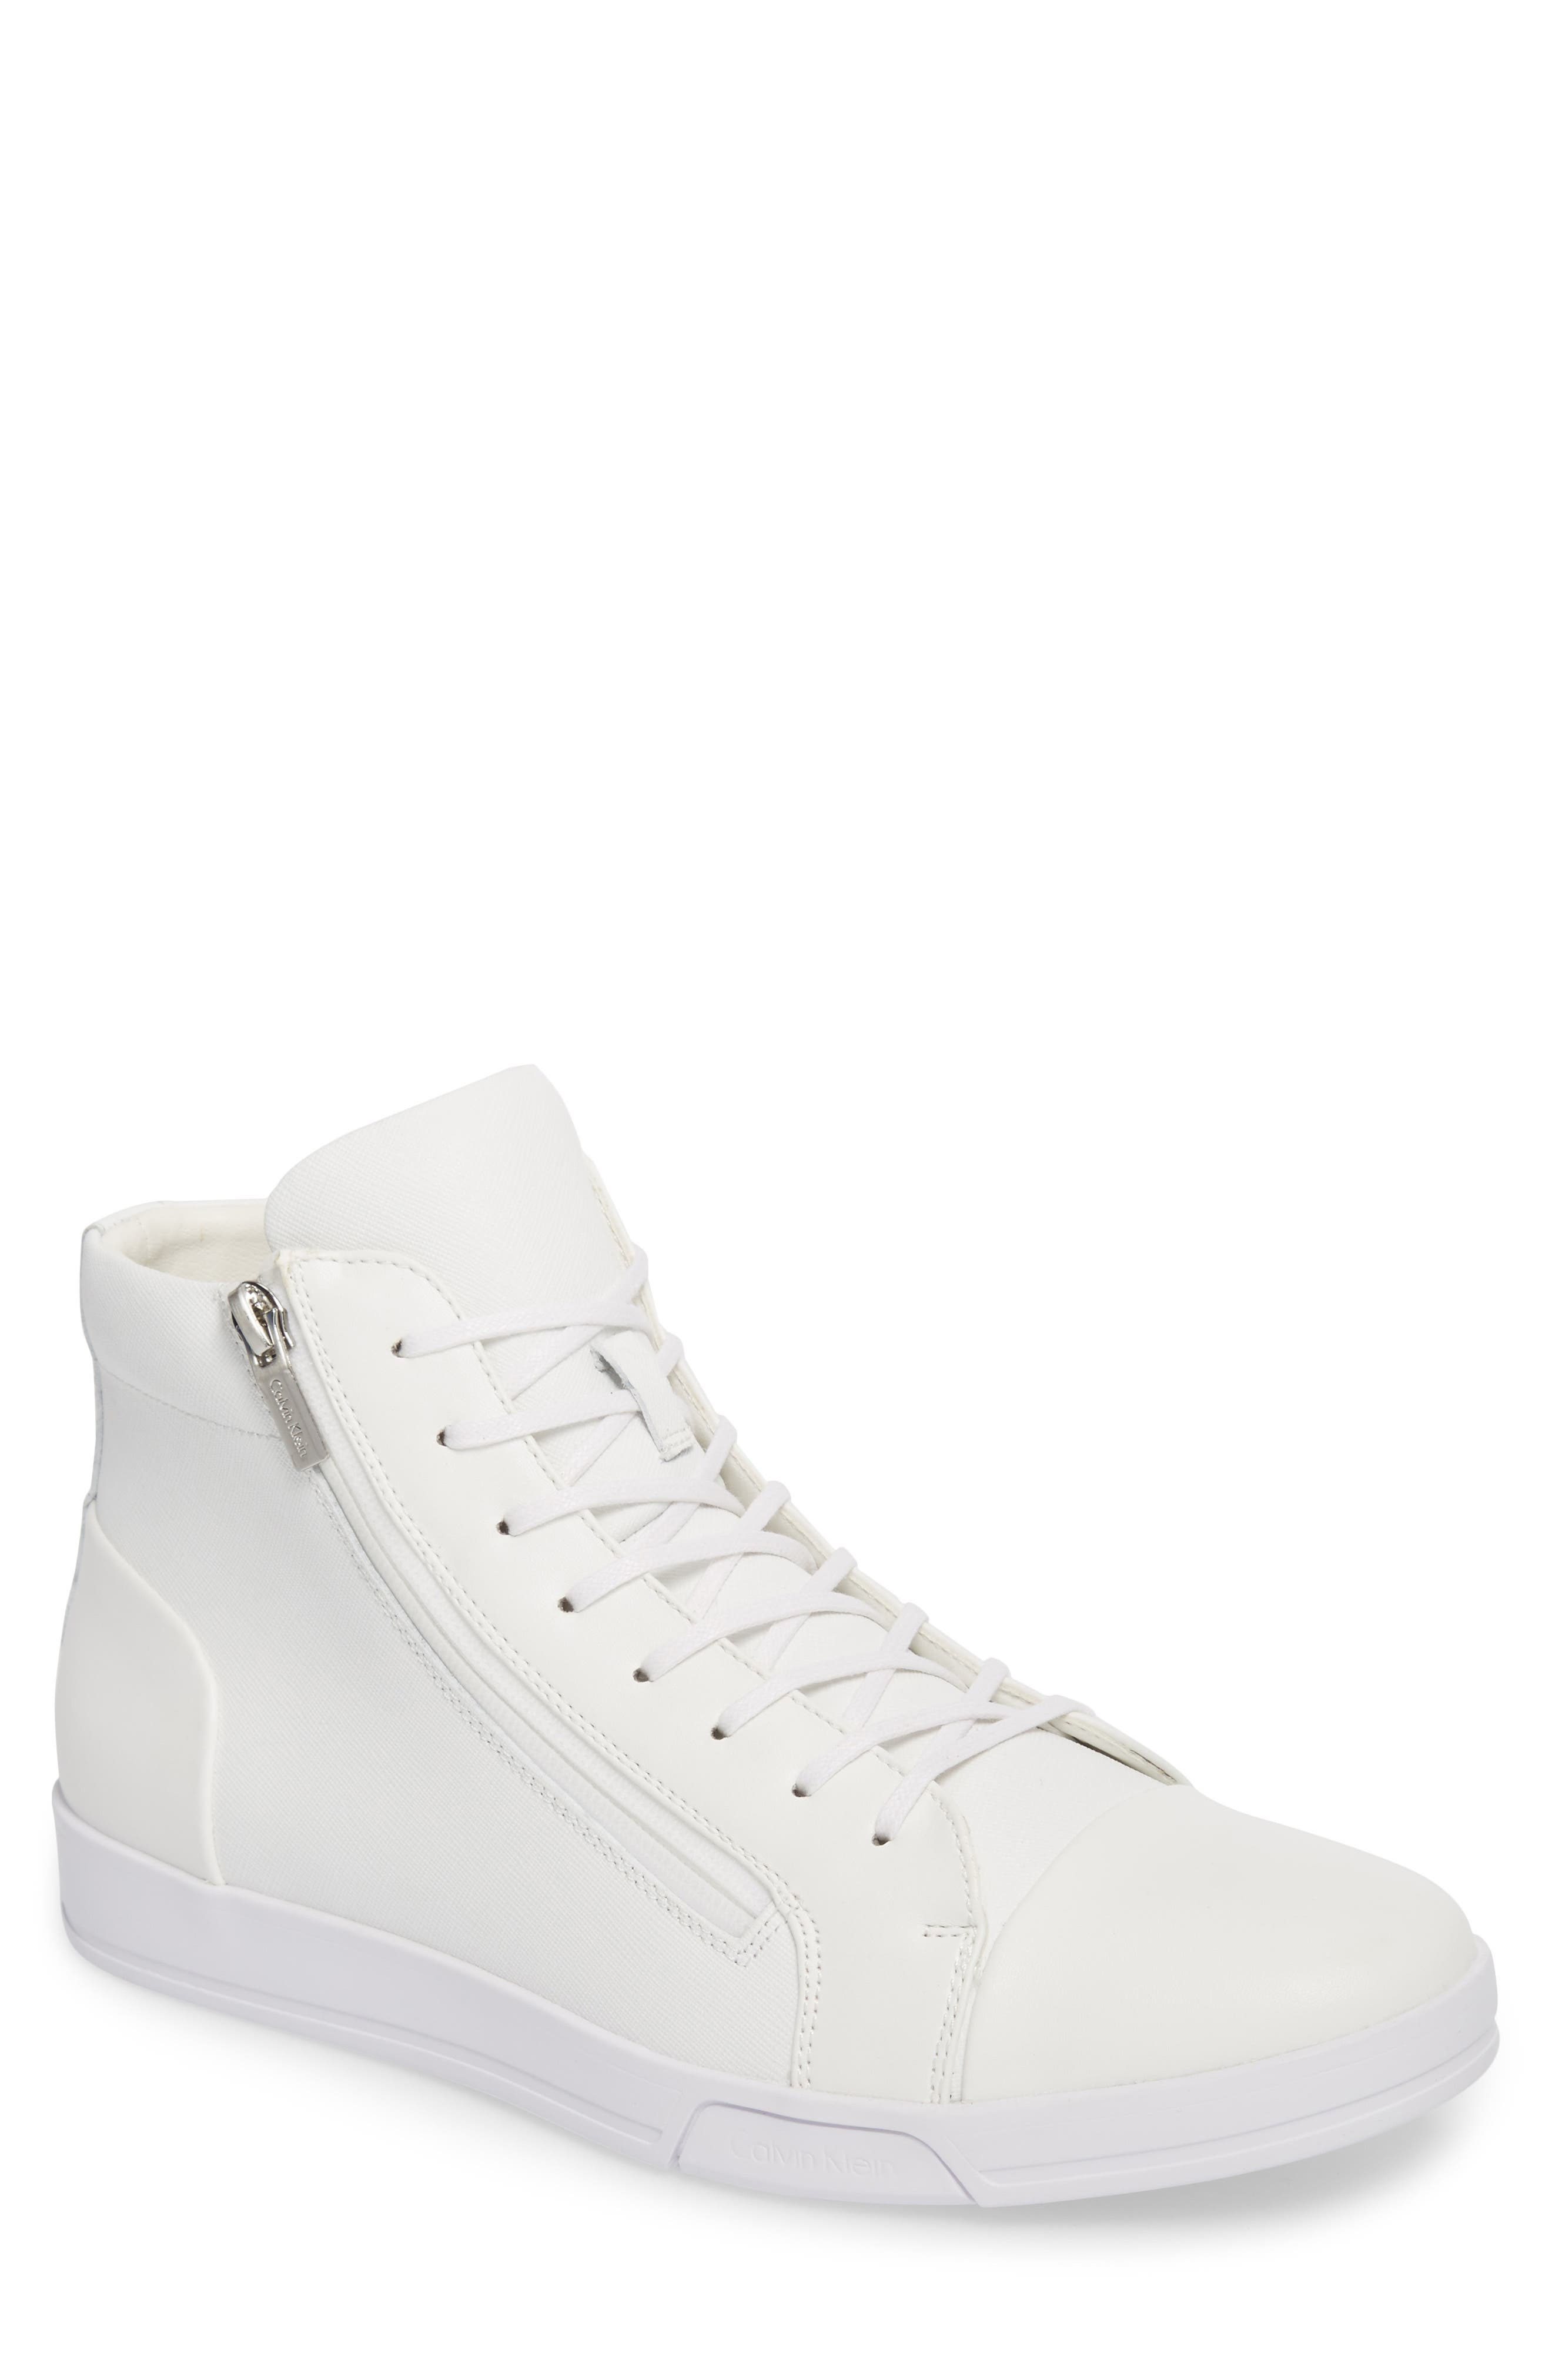 Berke High Top Sneaker,                             Main thumbnail 1, color,                             White Leather